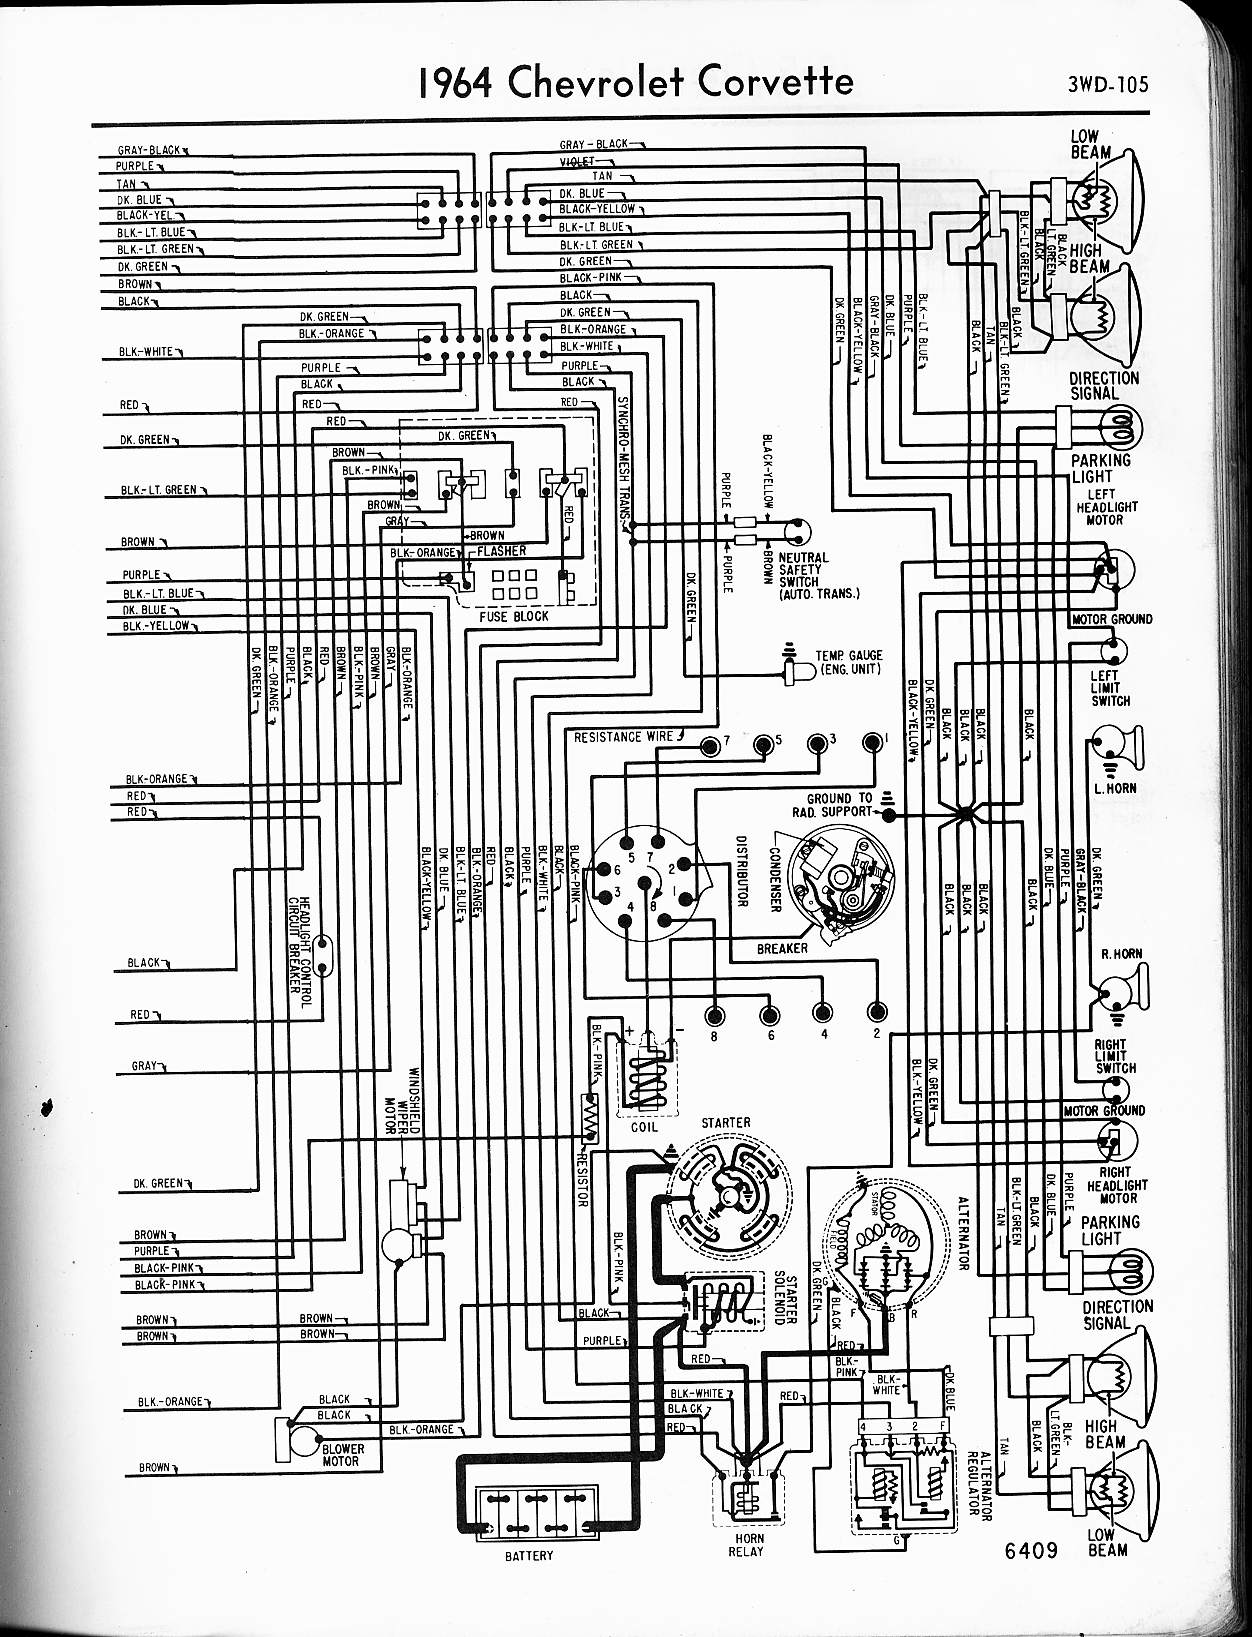 1964 corvette wiring schematic wiring diagram u2022 rh tinyforge co wiring diagram for 1964 corvette distributor 1964 corvette brake wiring diagram